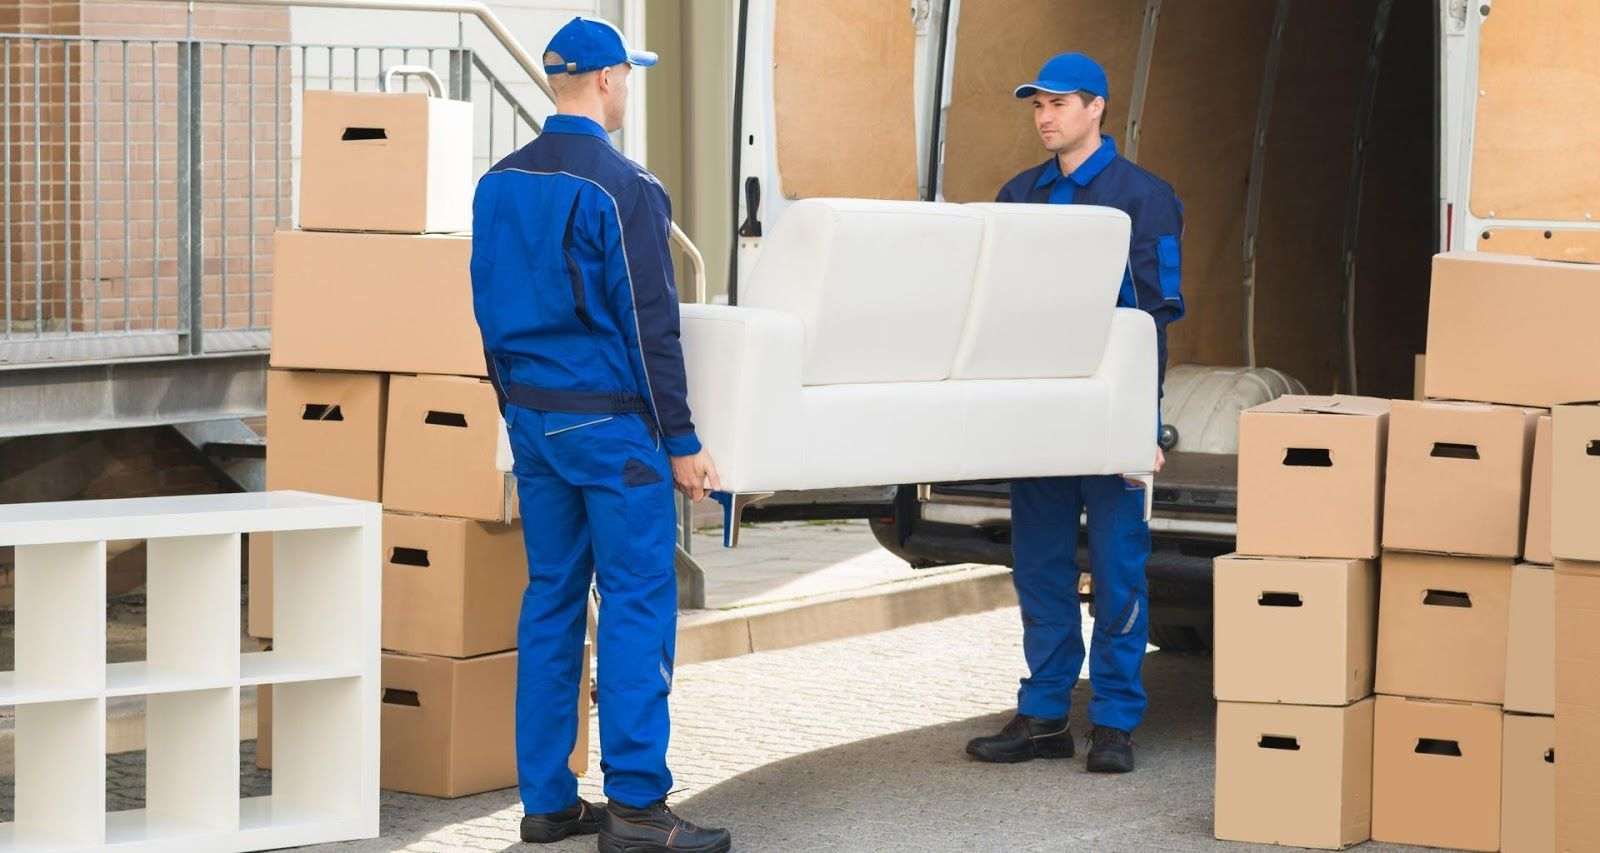 Home Removalist: what things need to consider when hiring a Removalist? -  #consider #hiring #removalist… | Best moving companies, Packers and movers,  Moving company